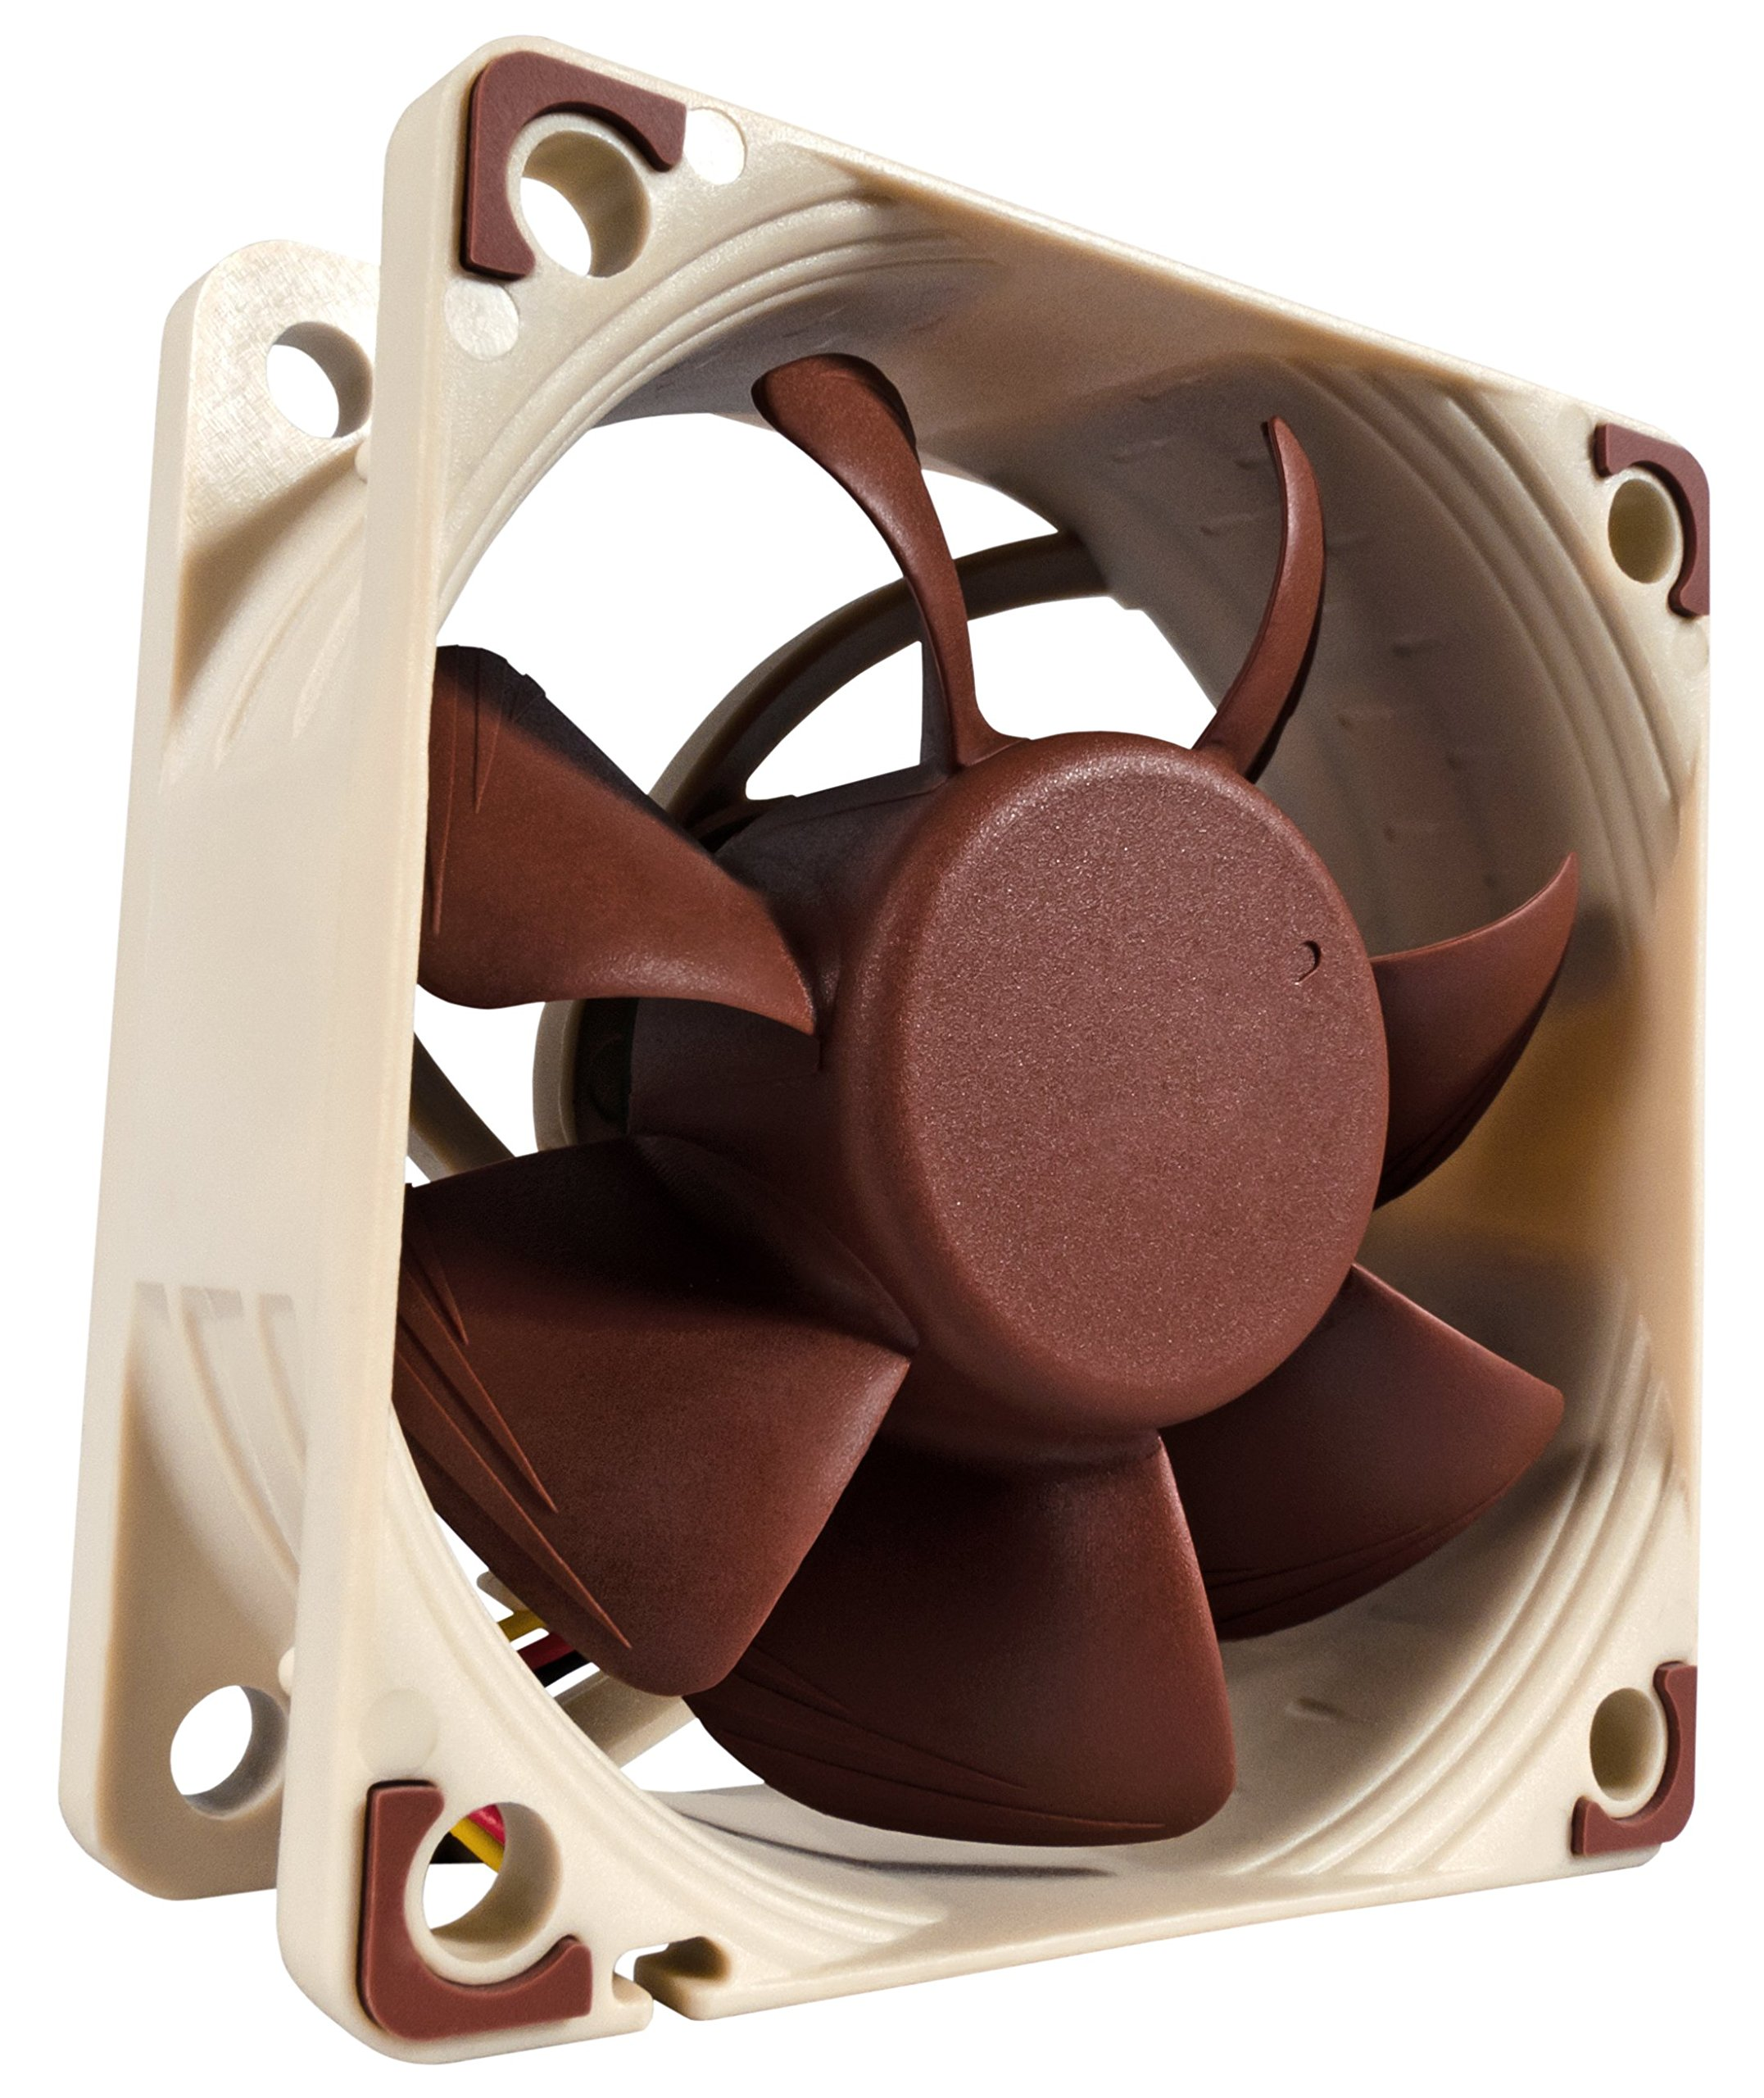 Noctua 60x25mm A-Series Blades with AAO Frame, SSO2 Bearing Premium Fan - Retail Cooling NF-A6x25 FLX (3-pin connector)